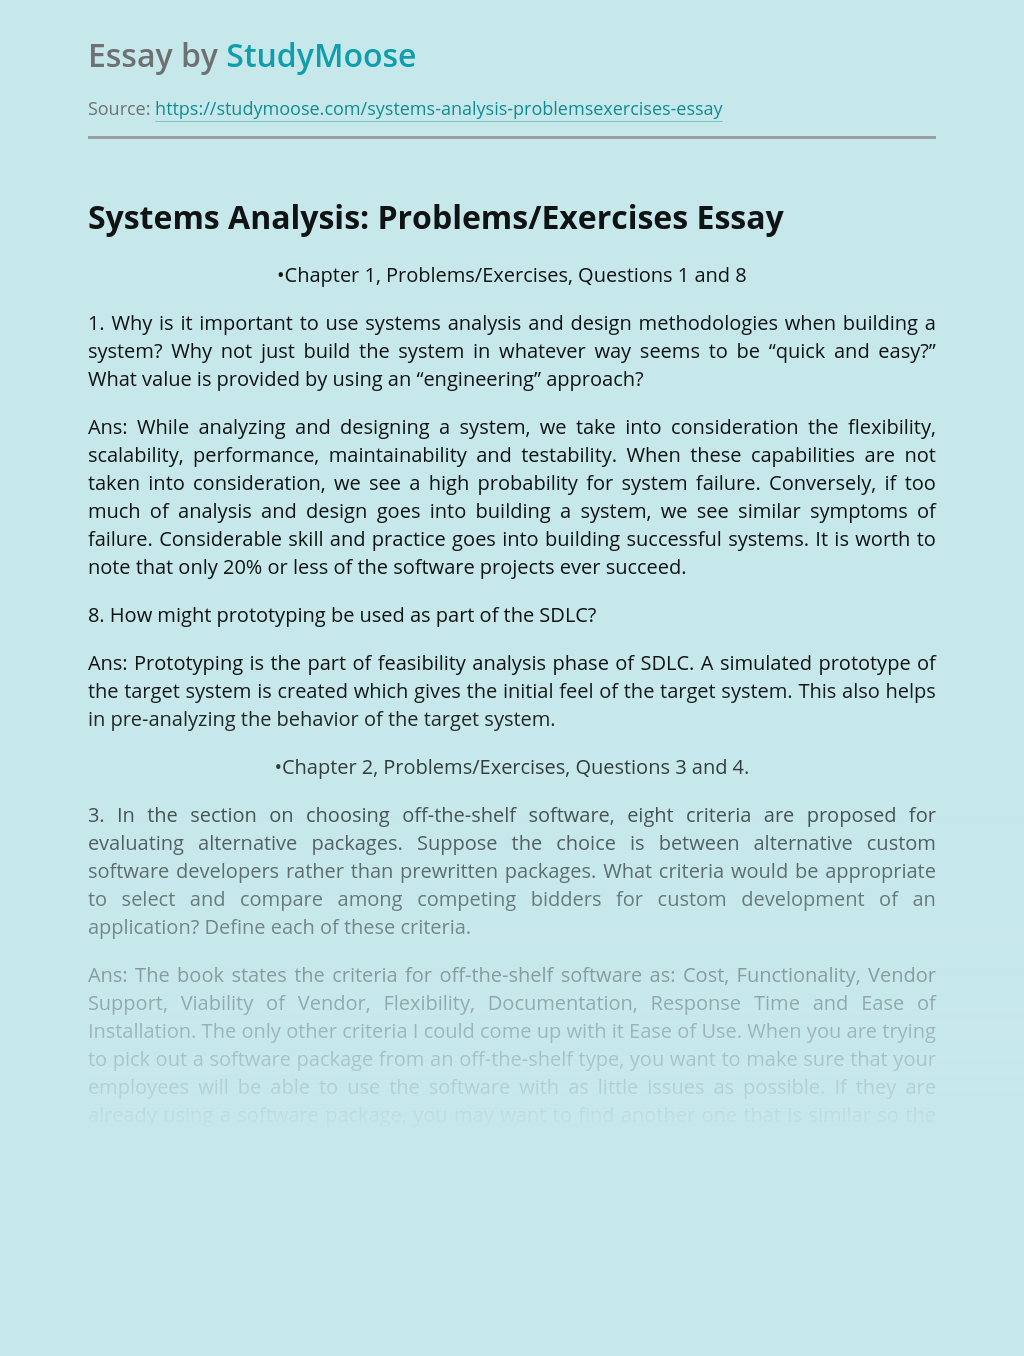 Systems Analysis: Problems/Exercises